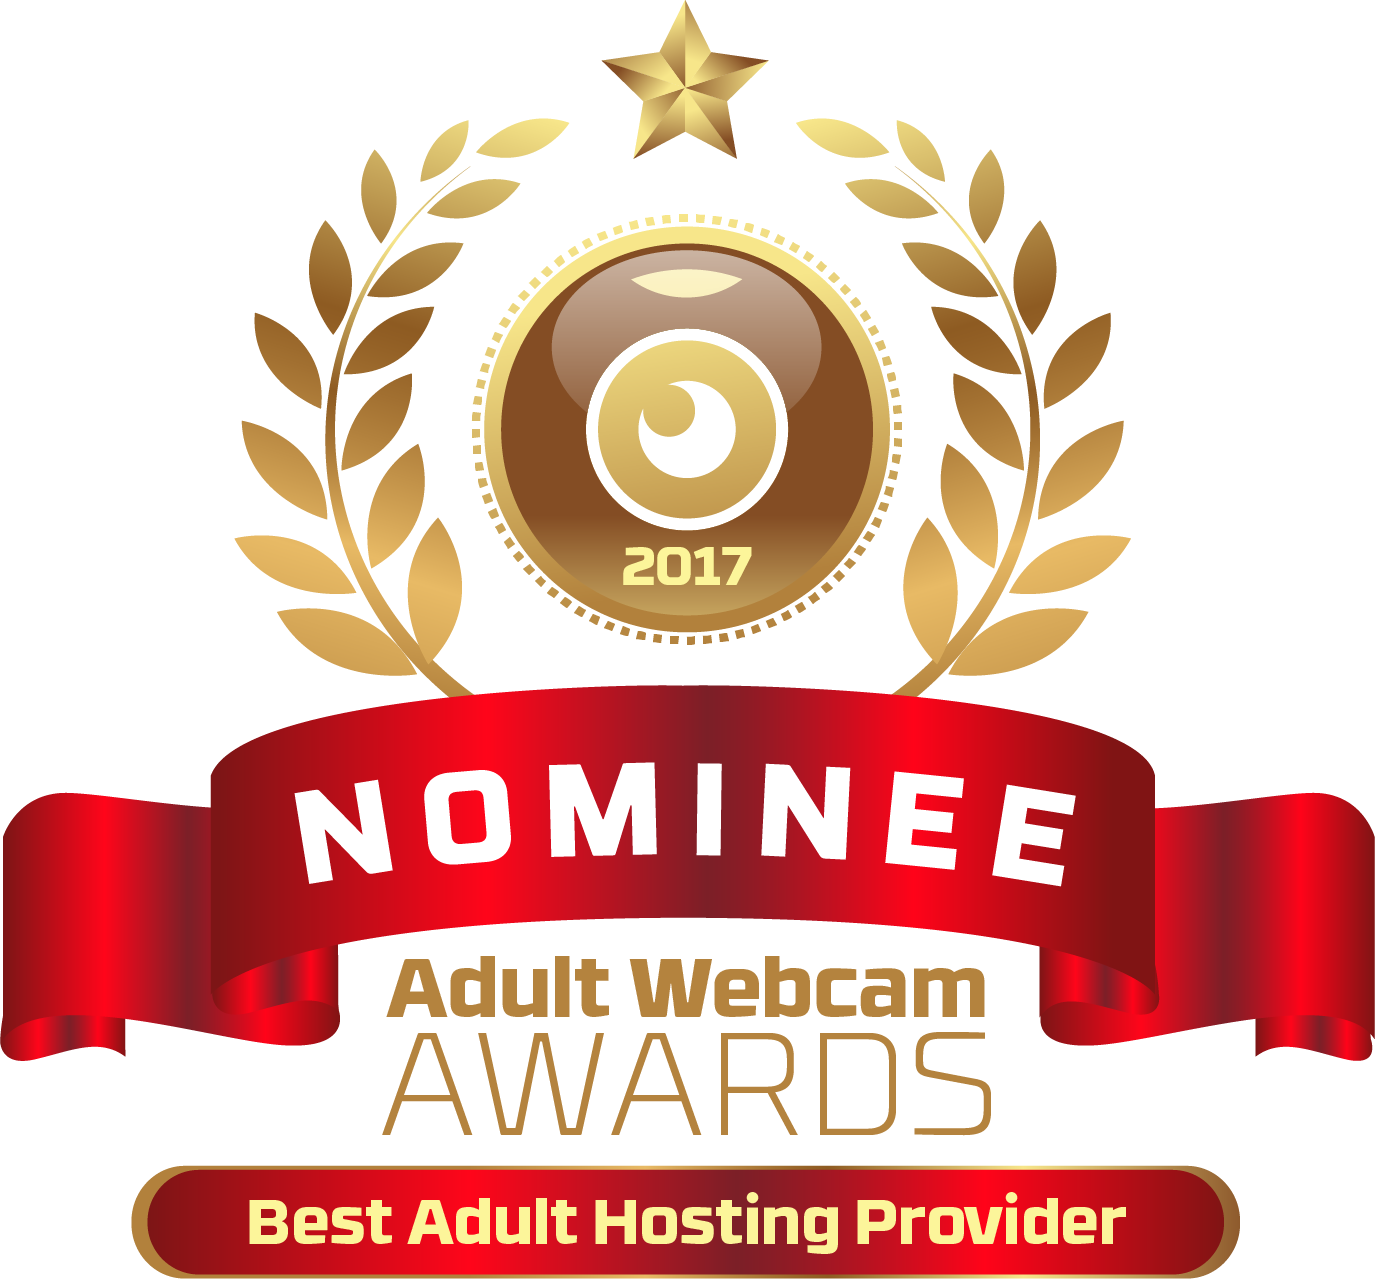 best adult hosting provider 2017 nominees